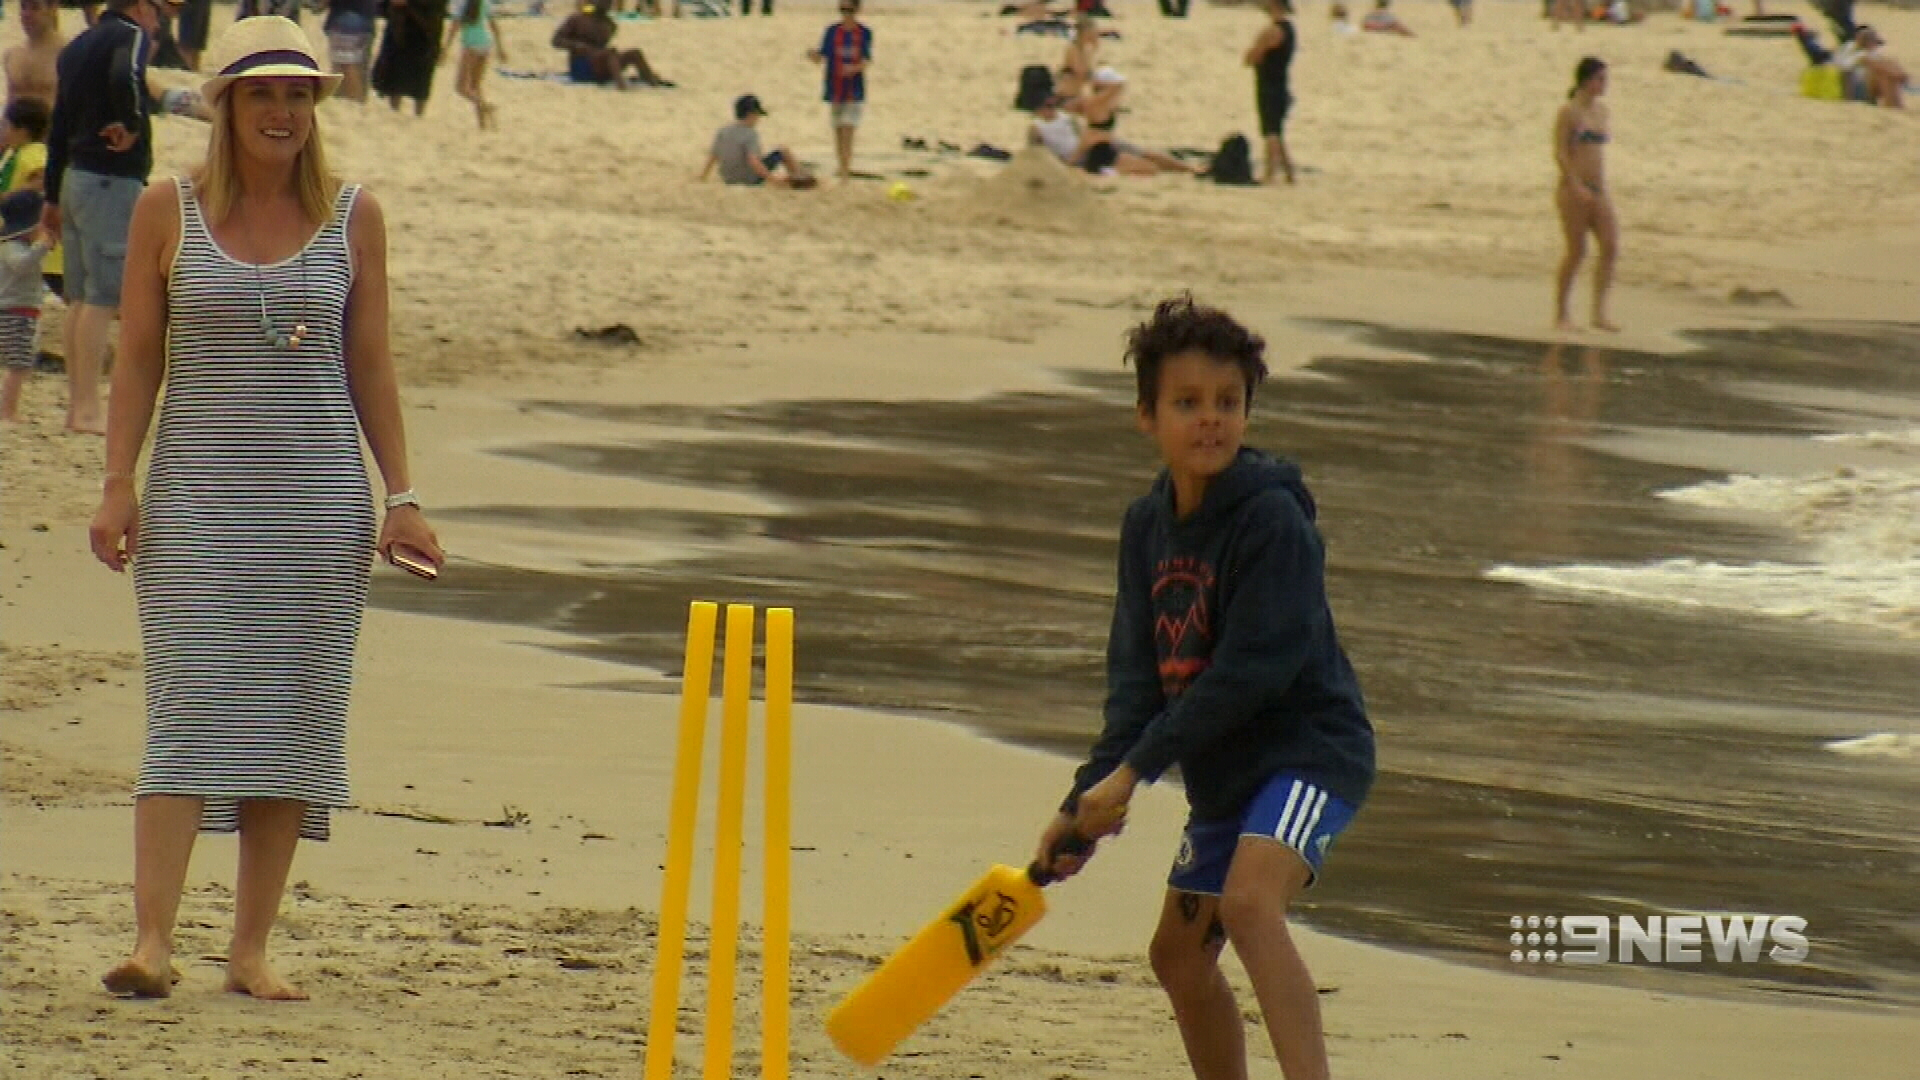 Temperatures hit 30 degrees in parts of Sydney. (9NEWS)